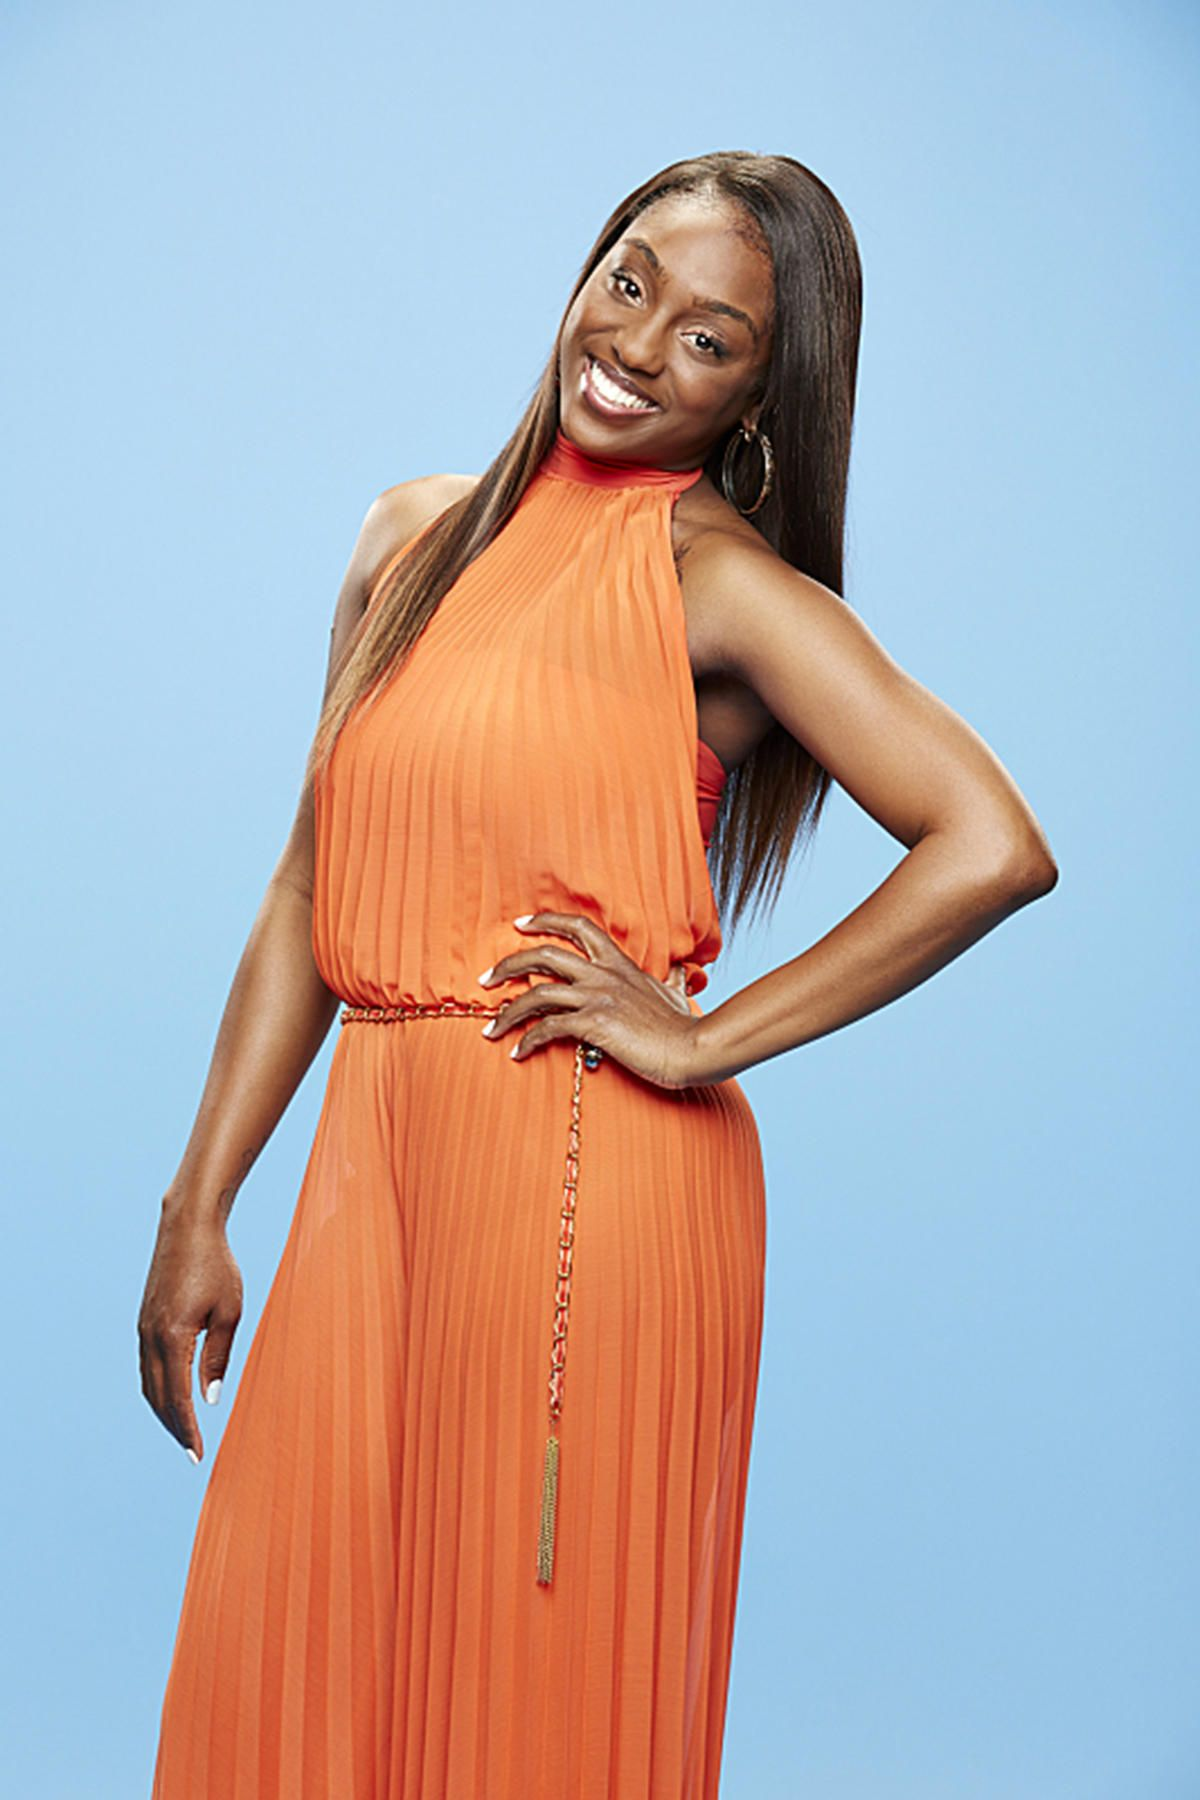 Big Brother Meet the New Houseguests! TV Guide Big